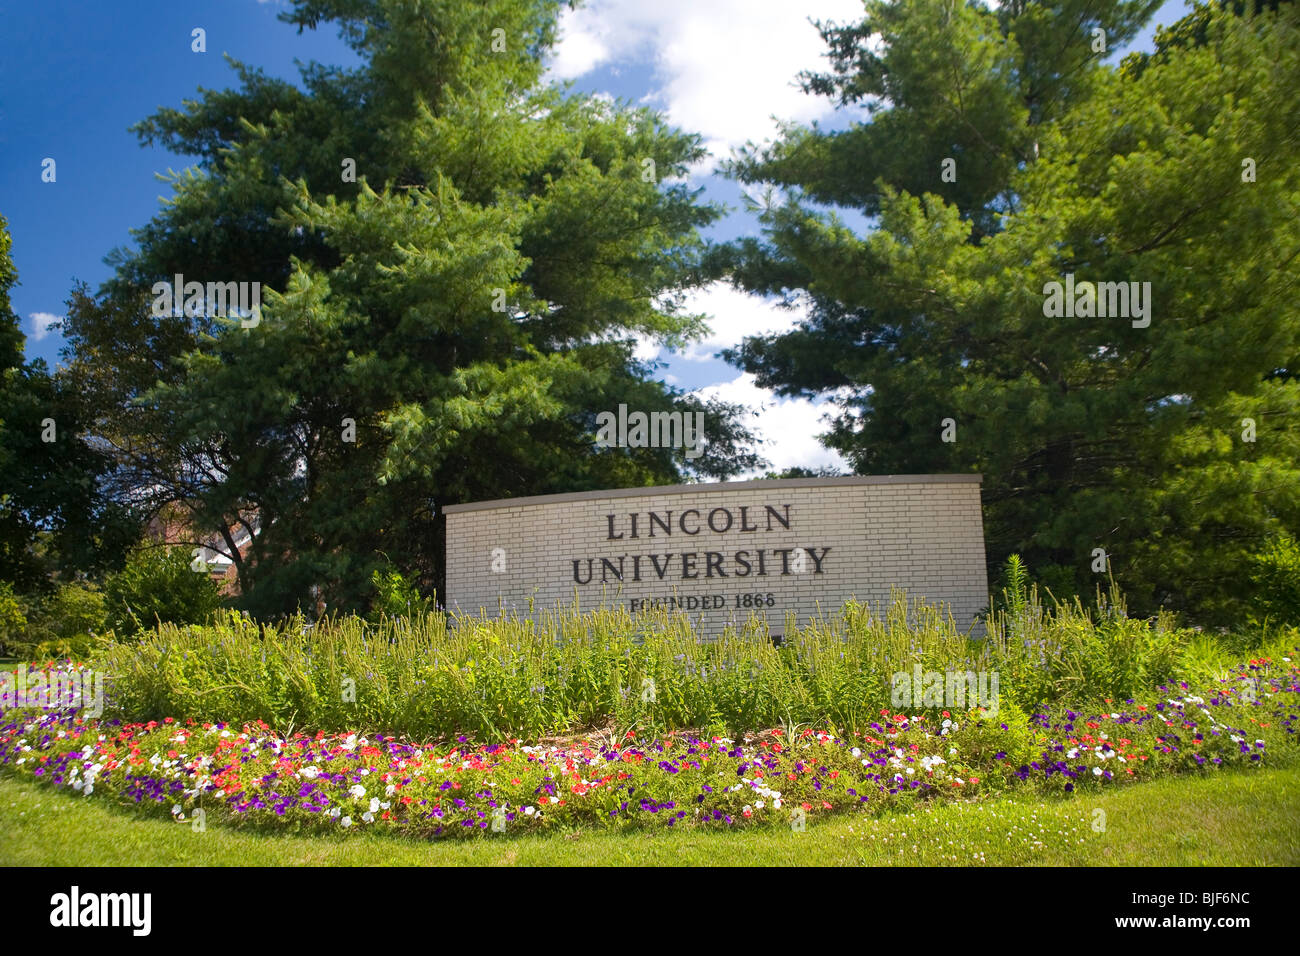 Lincoln University - Stock Image